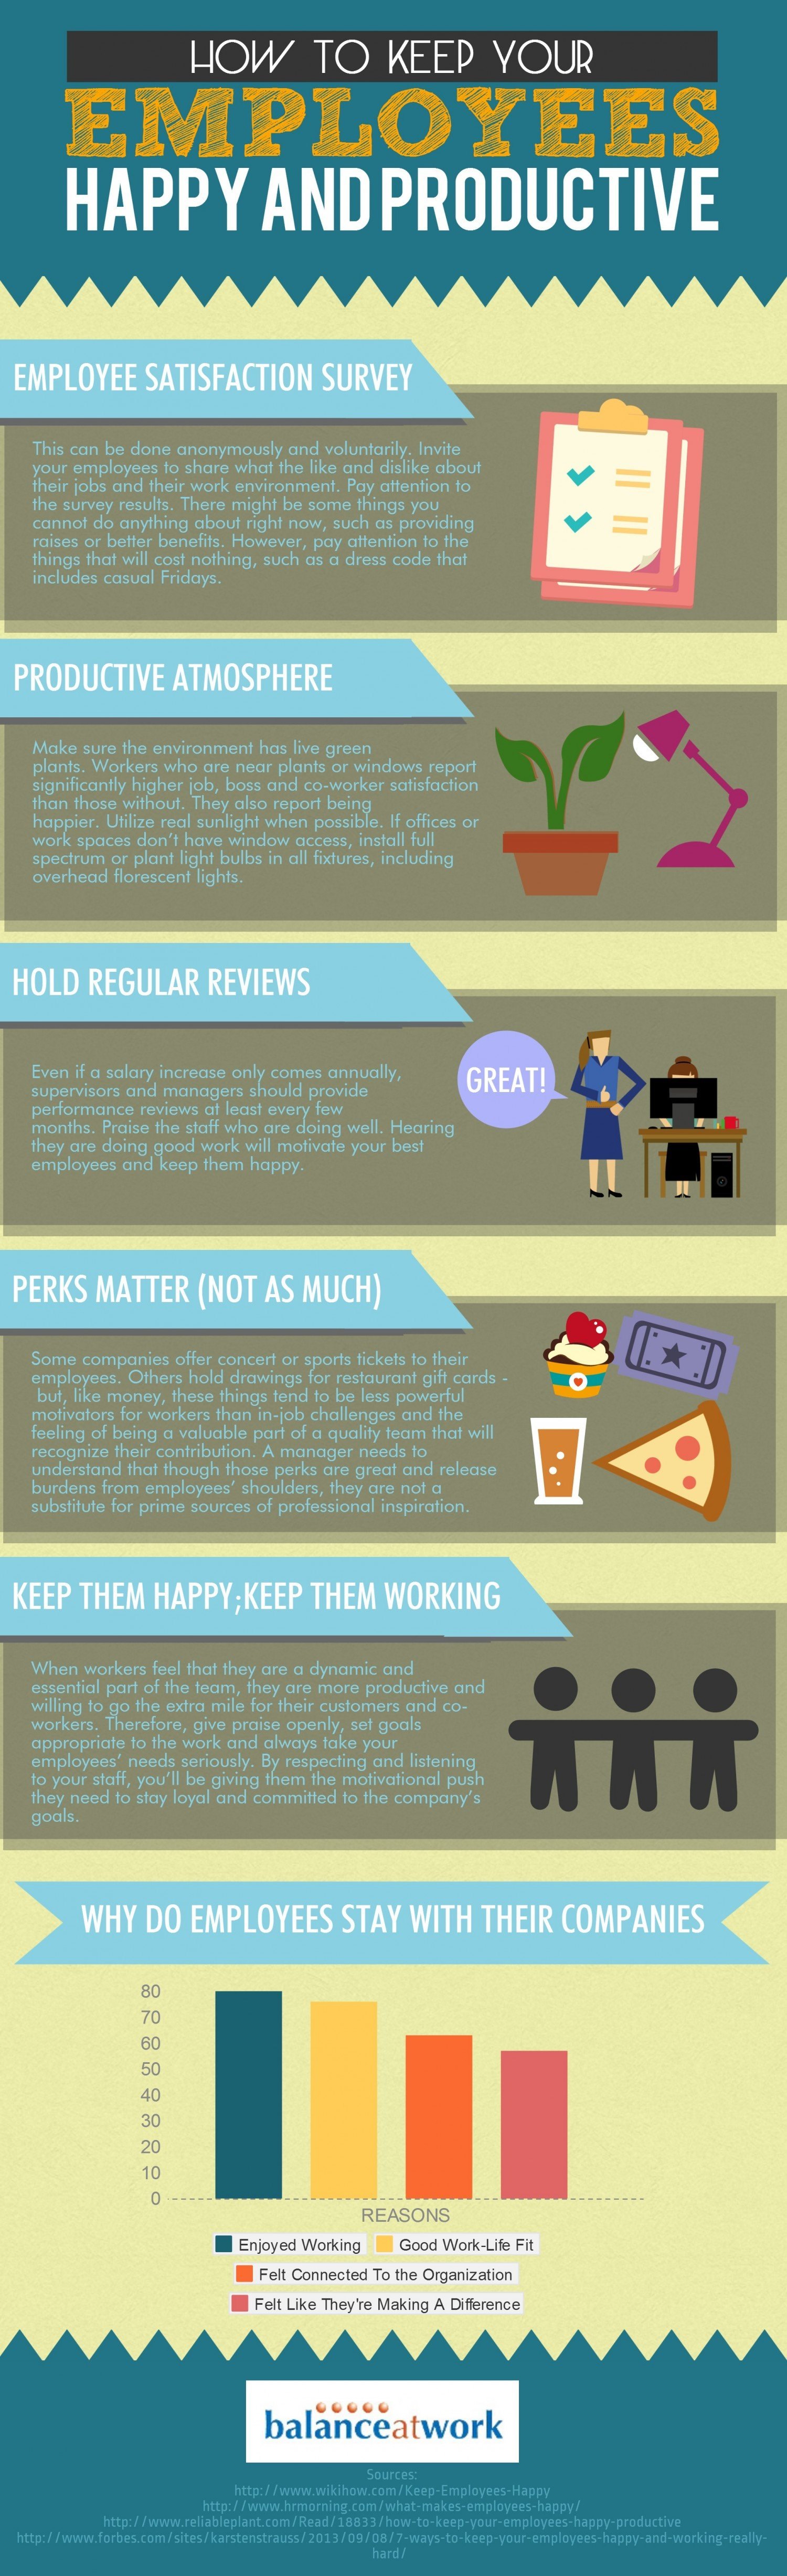 How to Keep your Employees Happy and Productive infographic